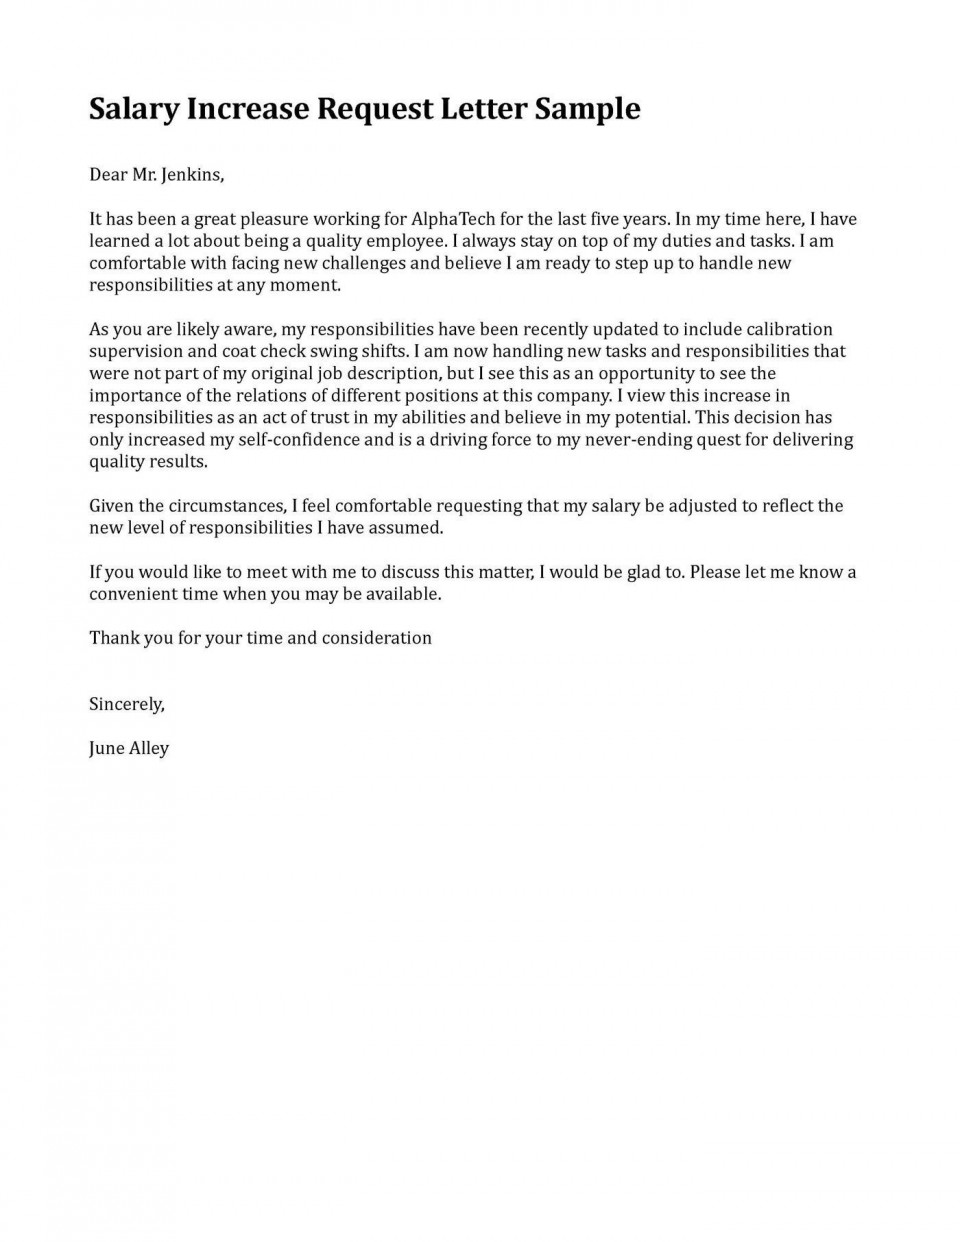 006 Fearsome Salary Increase Letter Template Highest Clarity  From Employer To Employee Australia No For960